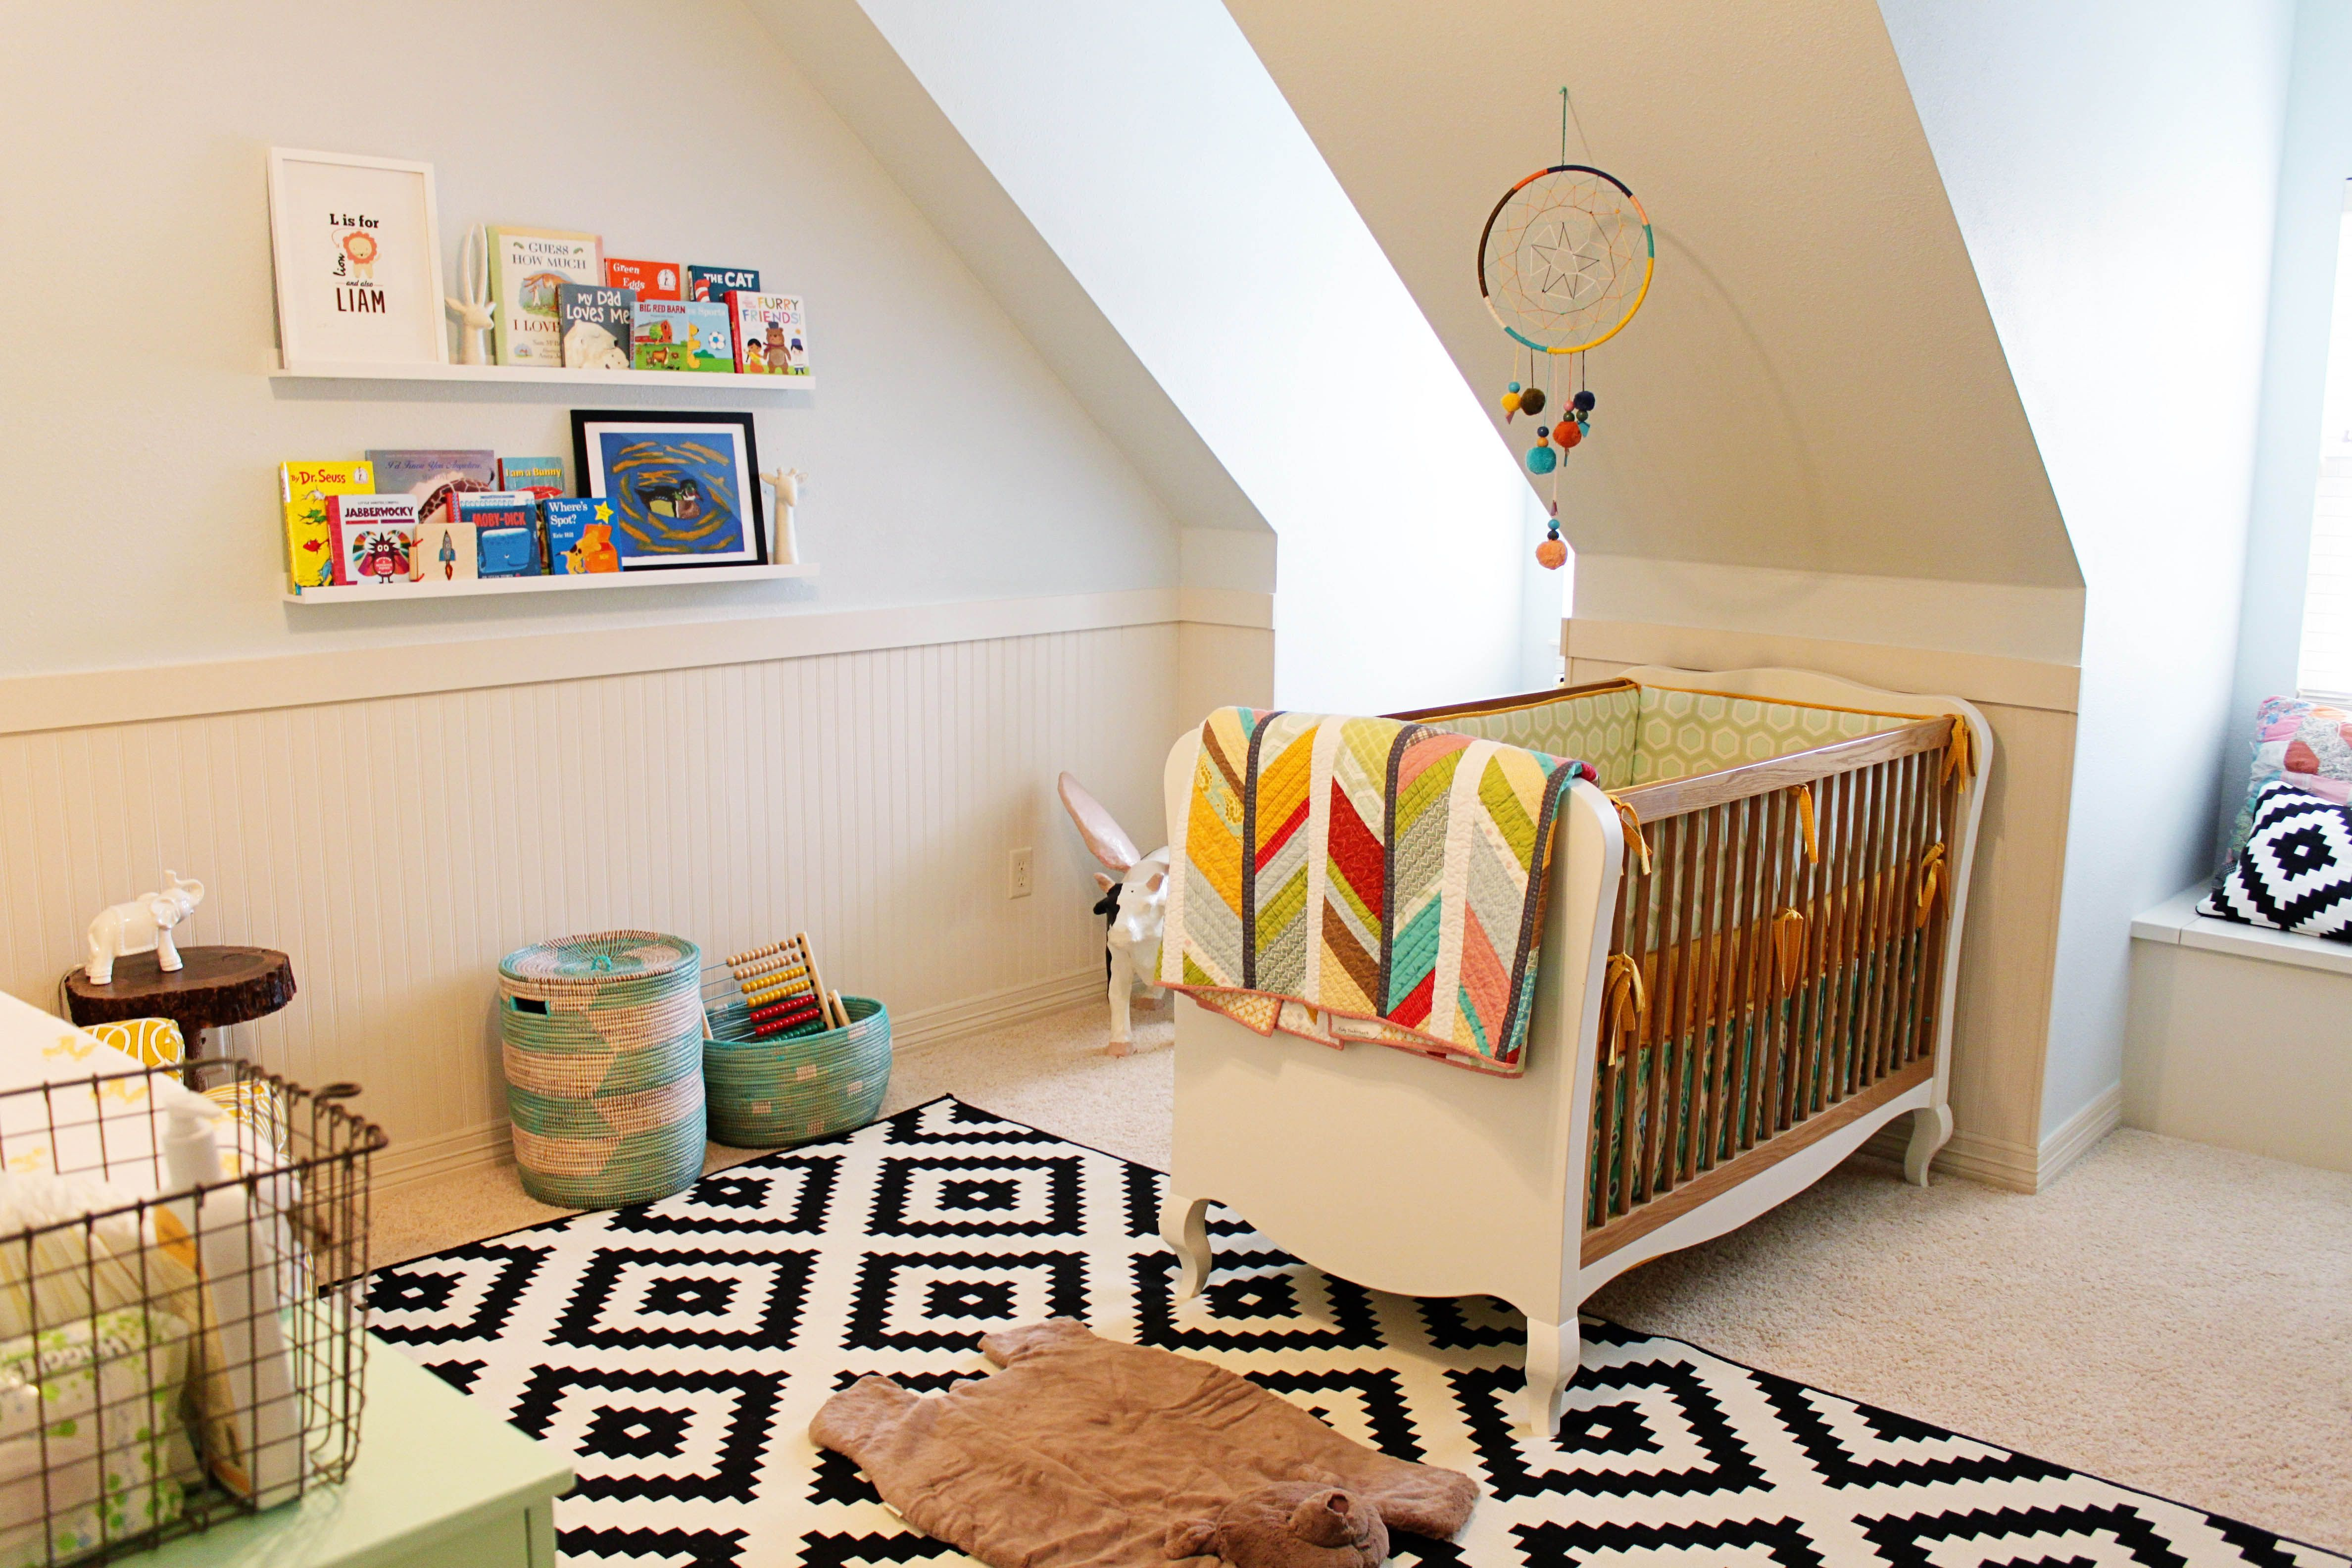 eclectic nursery unisex nursery fun and bright nursery nursery design diy nursery. Black Bedroom Furniture Sets. Home Design Ideas